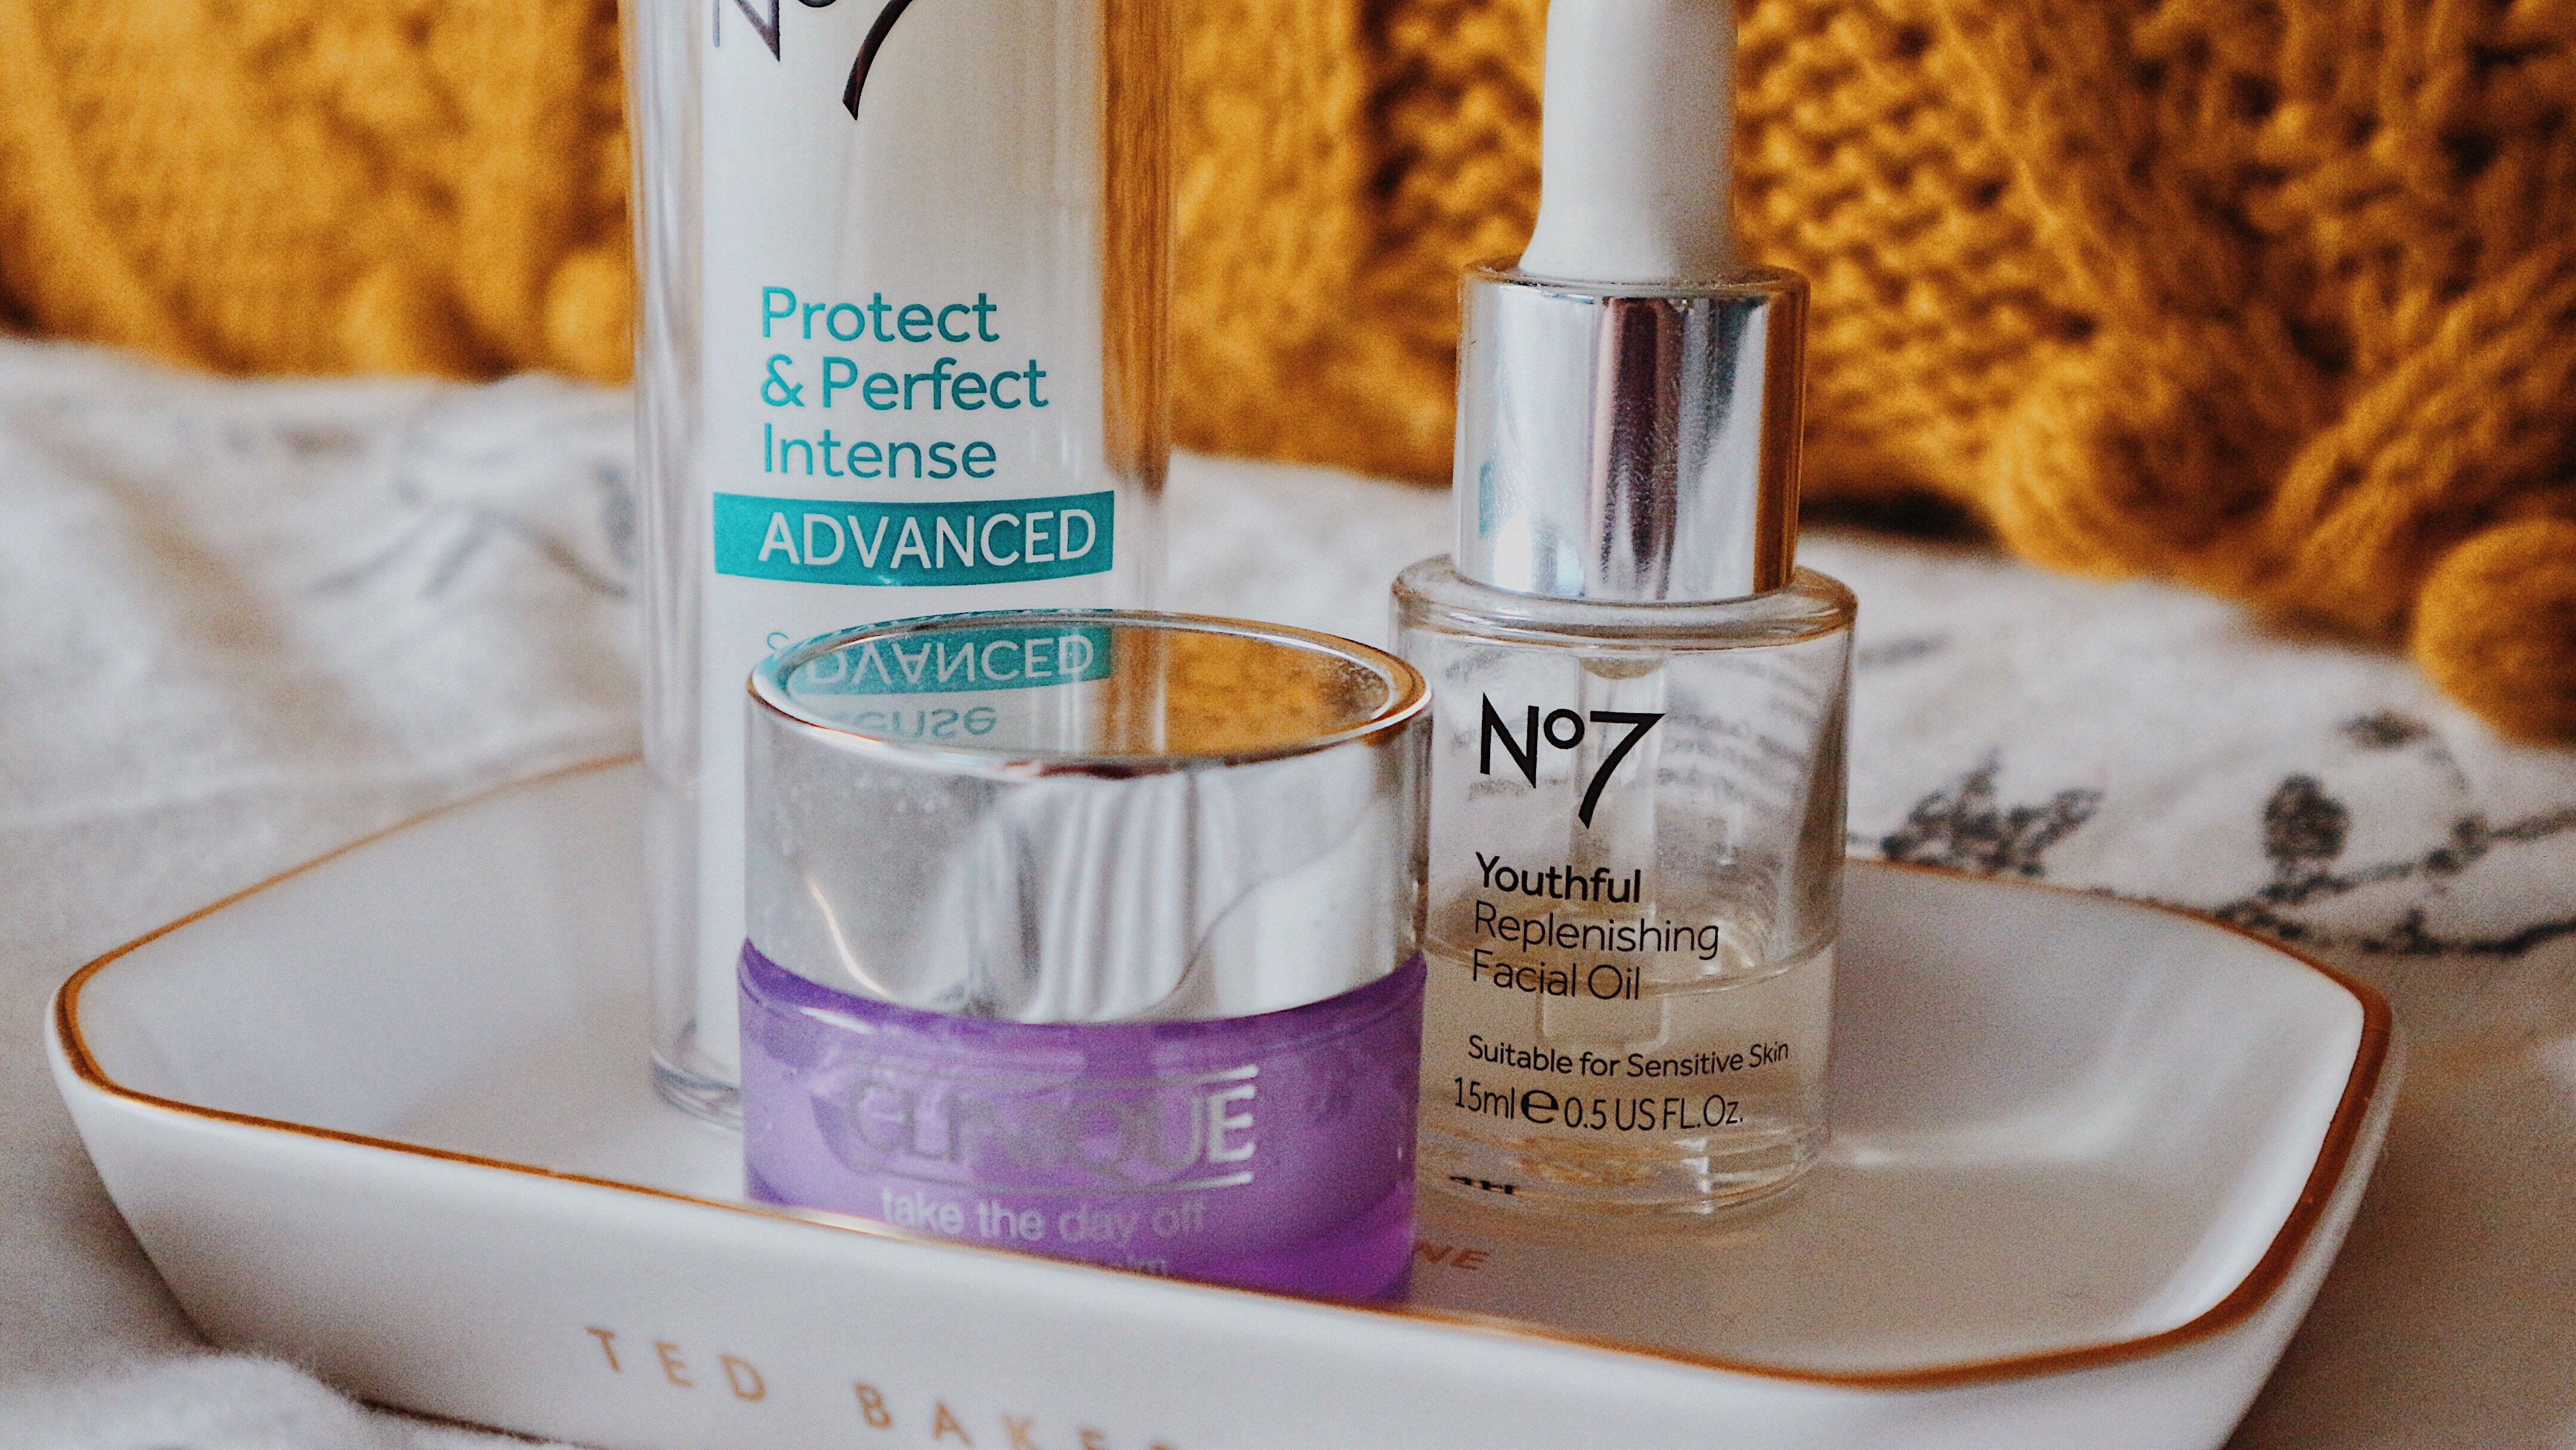 No7's Protect & Perfect Intense Advanced Serum Pump,Youthful Replenishing Facial Oil andProtect & Perfect Intense Advanced Night Cream & Clinique'sTake The Day Off Balm